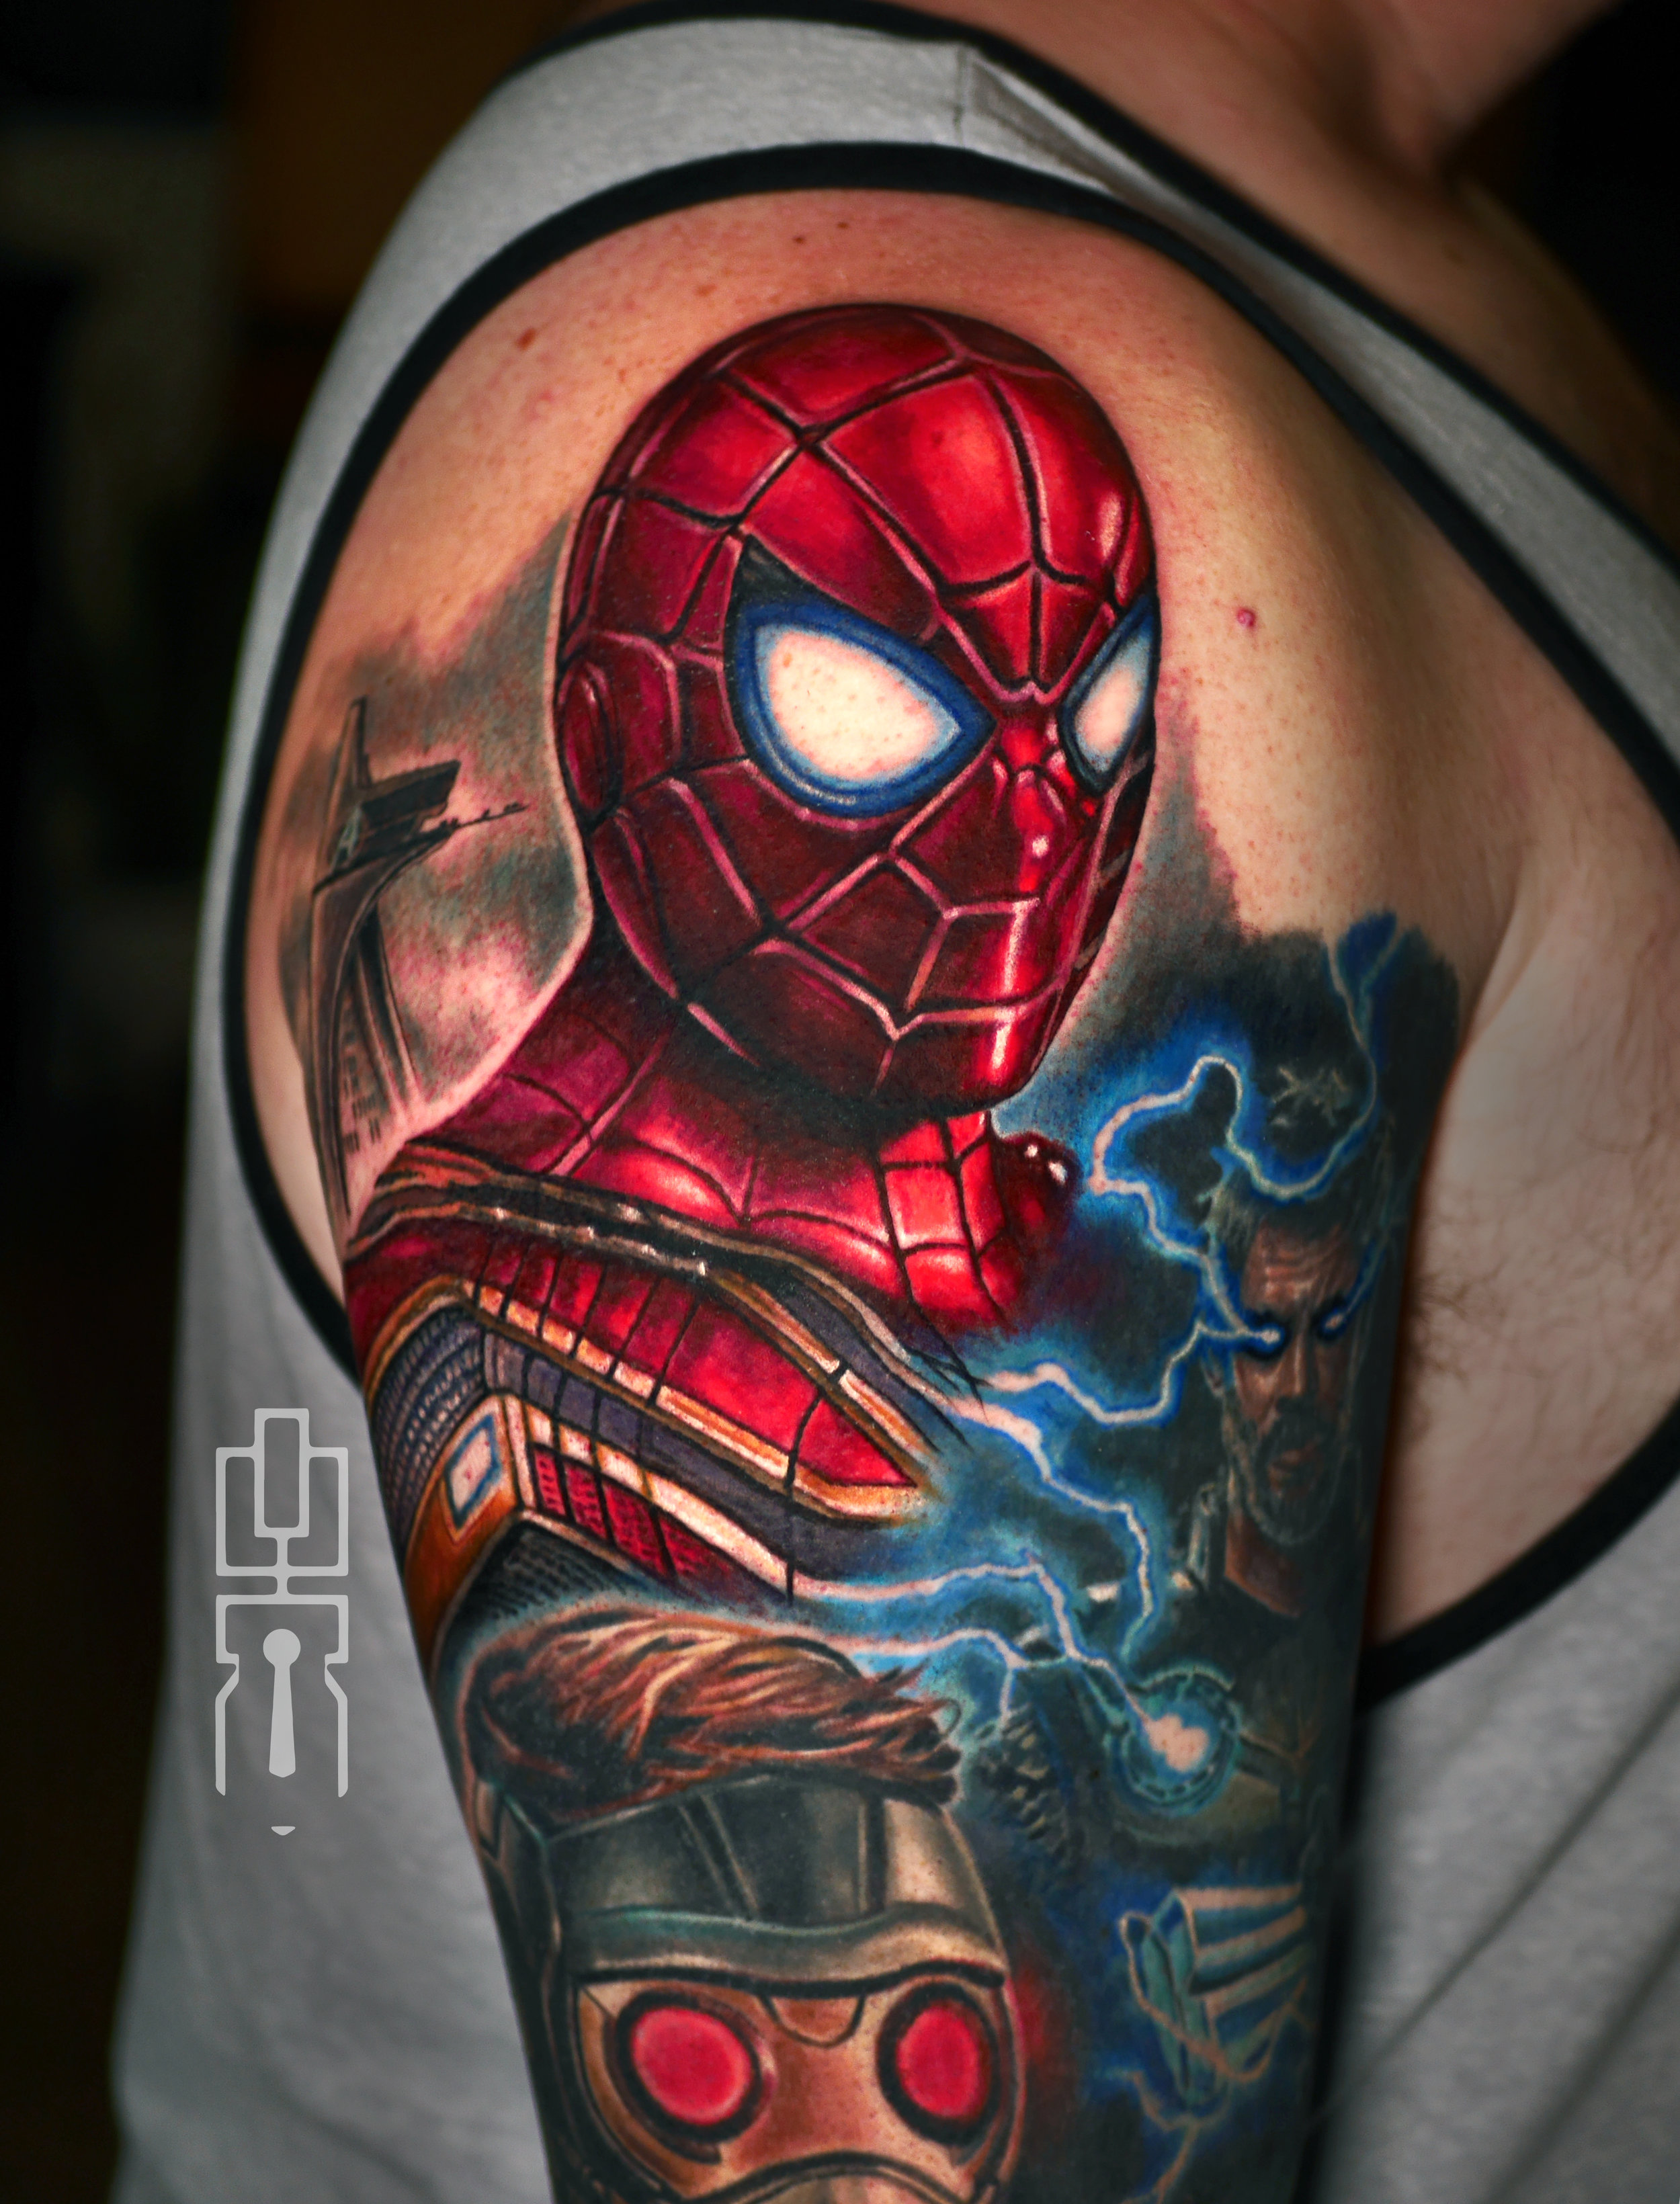 spiderman iron spider suit tom holland tattoo .jpg